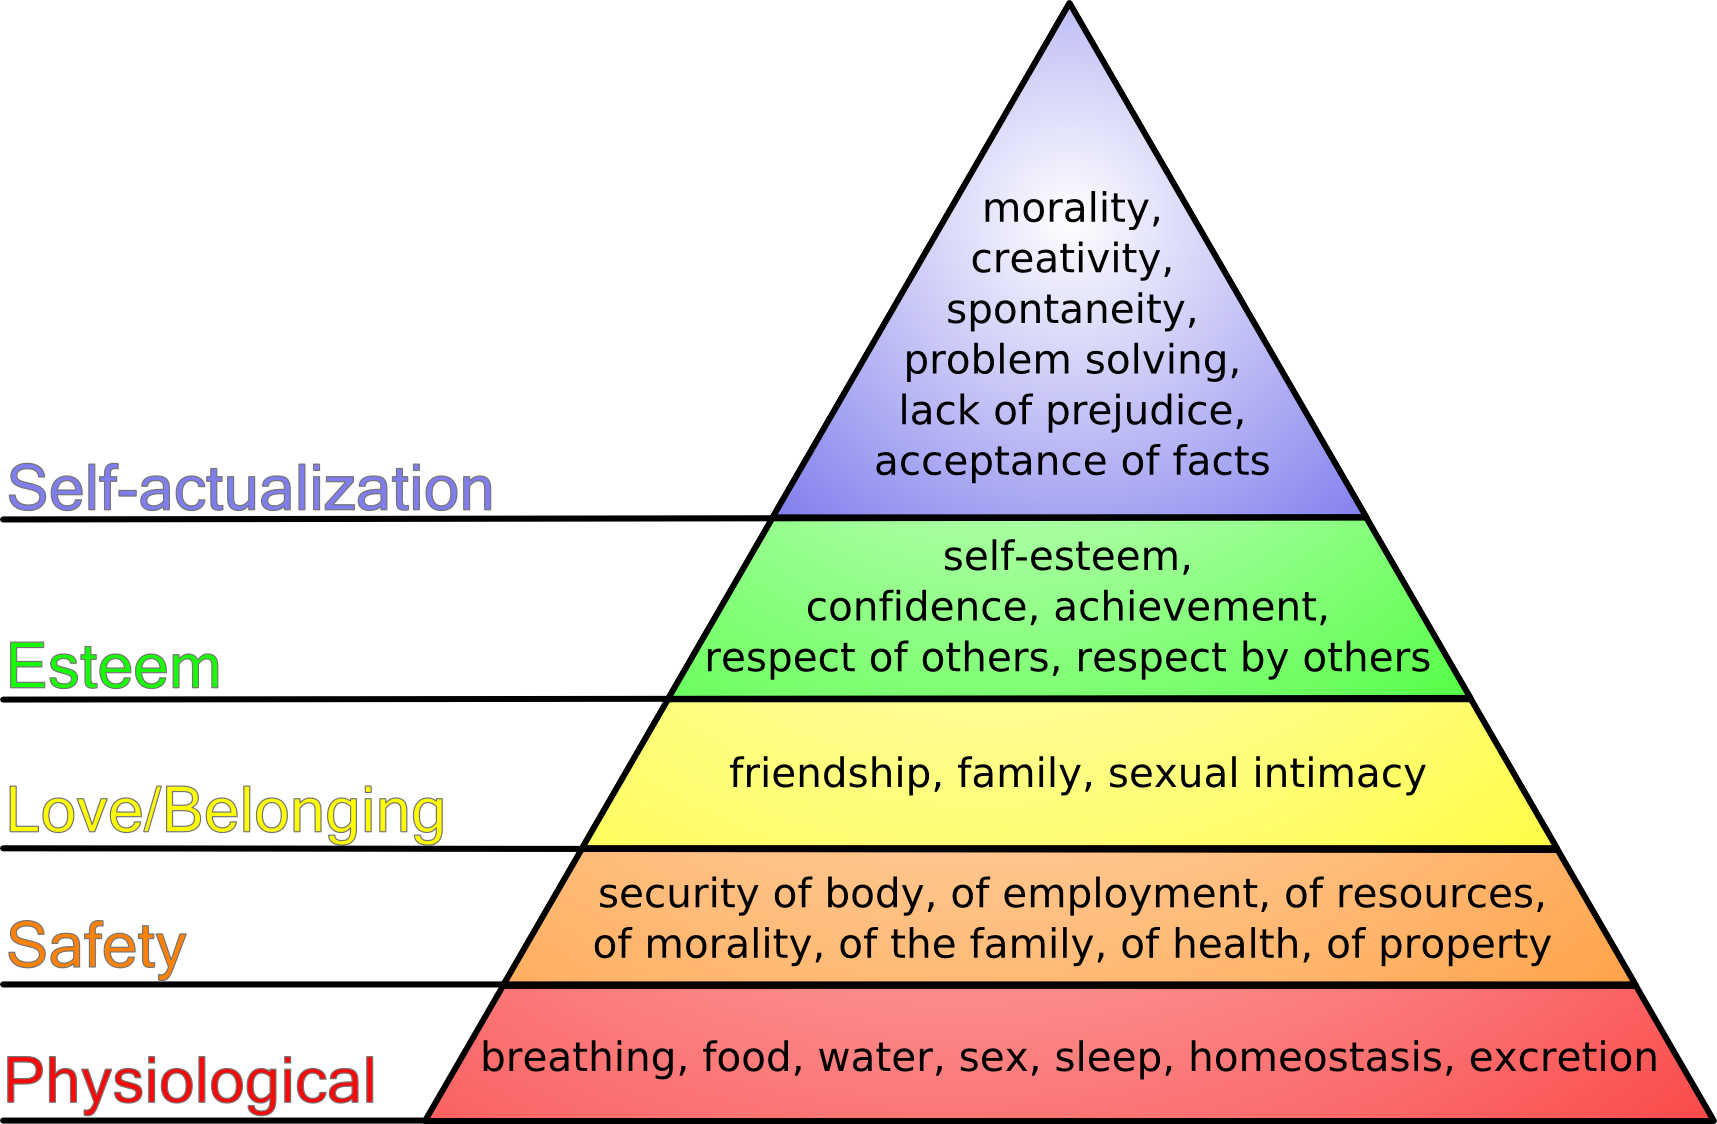 Abraham Maslow's hierarchy of needs - Wikipedia.com